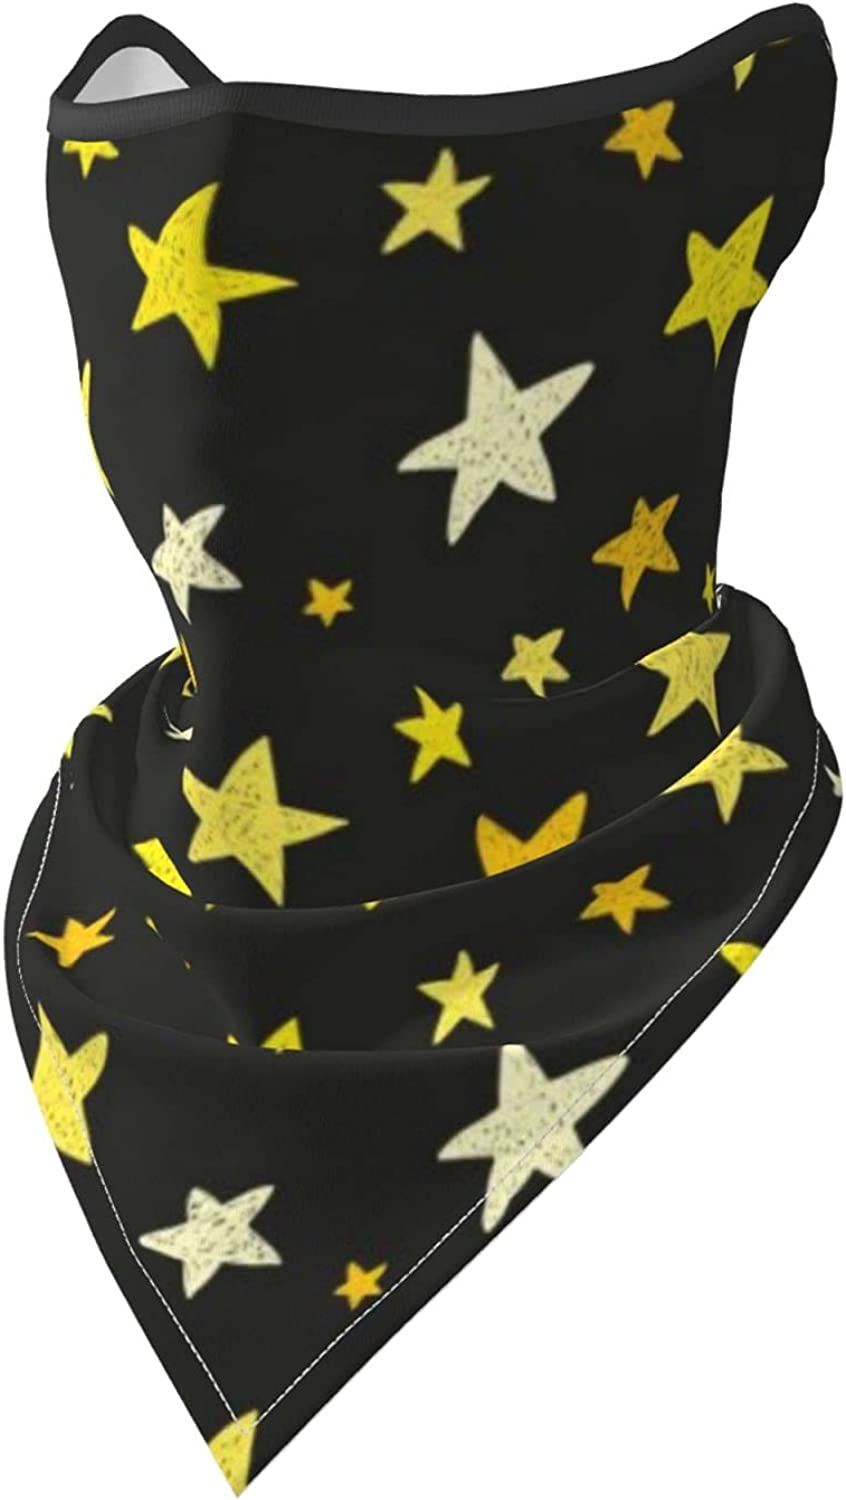 Yellow Stars on Black Background Breathable Bandana Face Mask Neck Gaiter Windproof Sports Mask Scarf Headwear for Men Women Outdoor Hiking Cycling Running Motorcycling